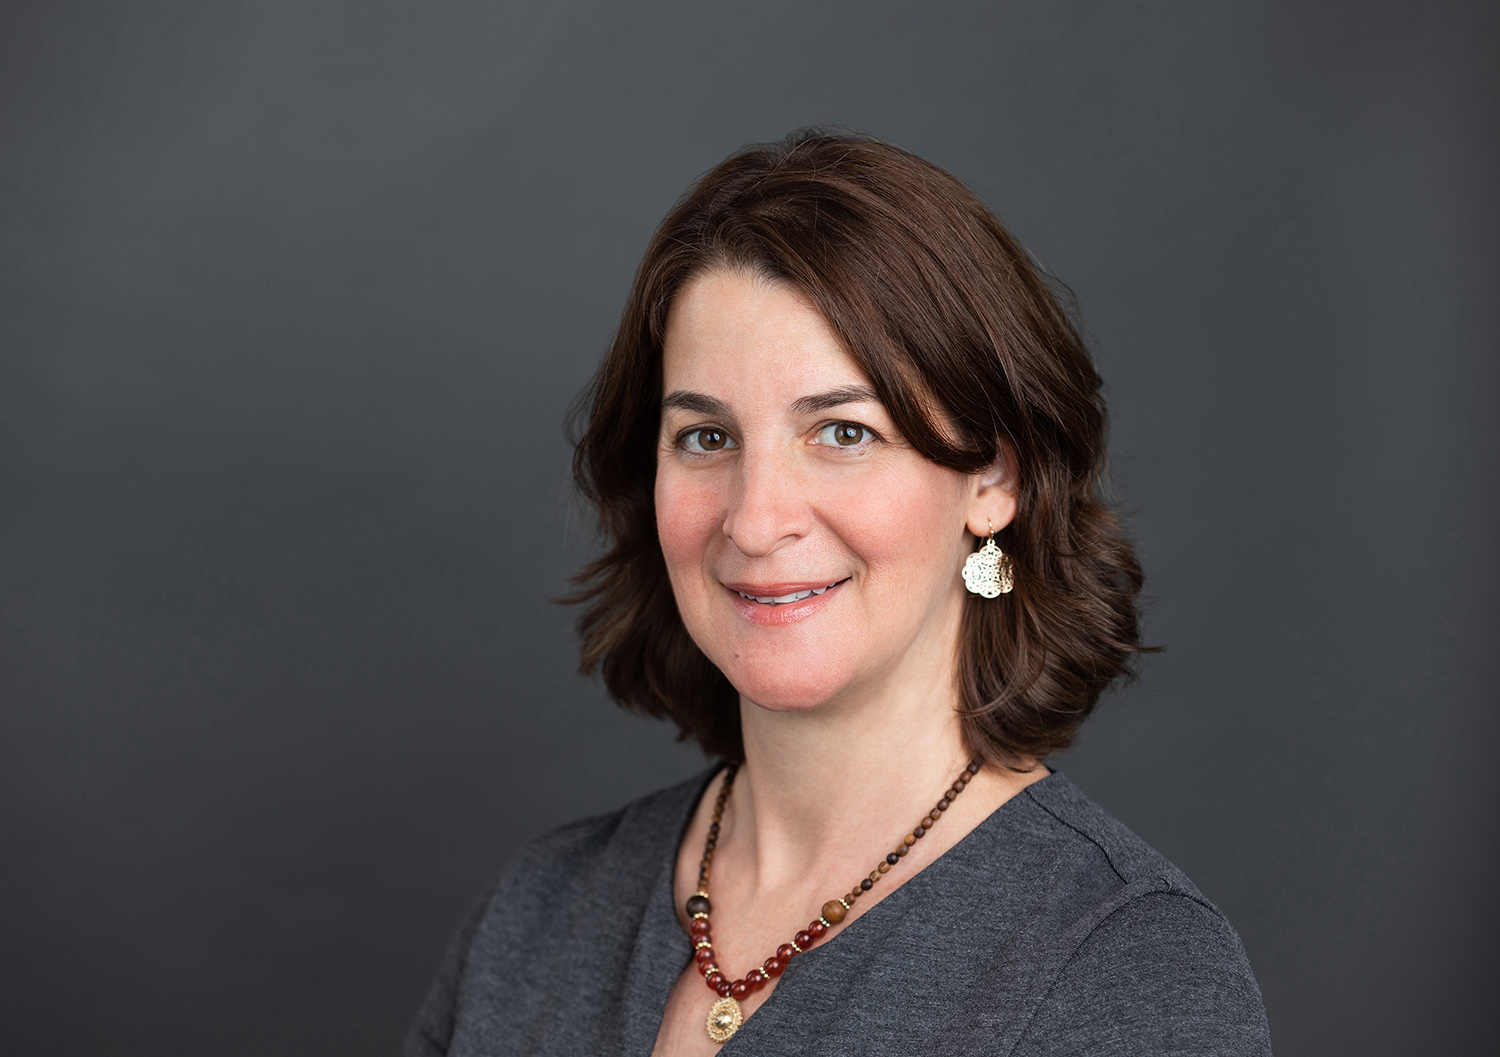 KTGY Architecture + Planning's Tysons Office Welcomes Lauren Young as Regional Development Director